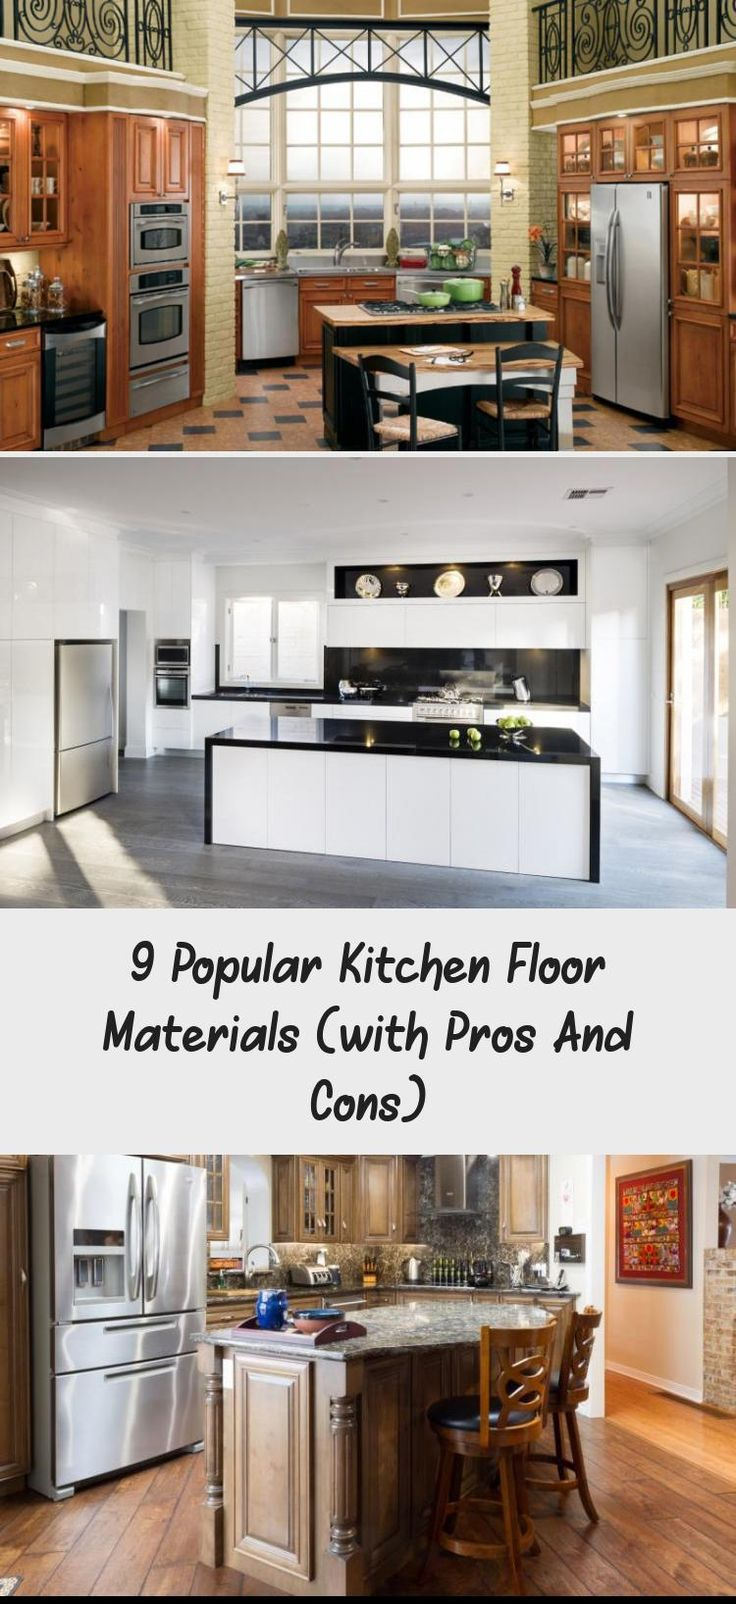 9 Popular Kitchen Floor Materials (with Pros And Cons